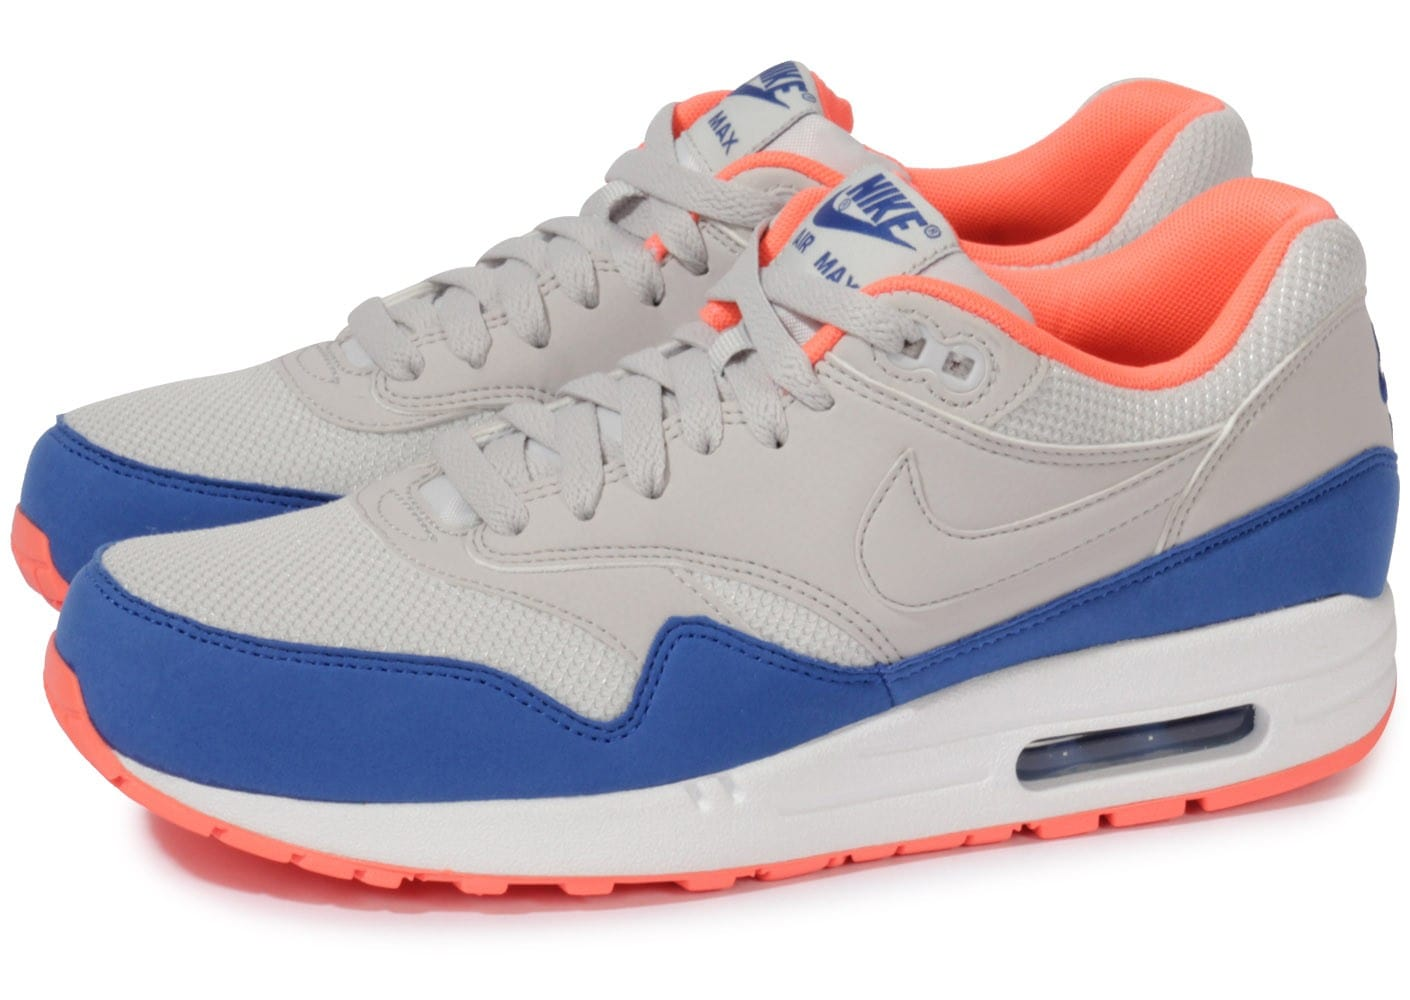 Nike Grise Air Max 1 Essential Grise Nike Chaussures Baskets Homme Chausport 352c58